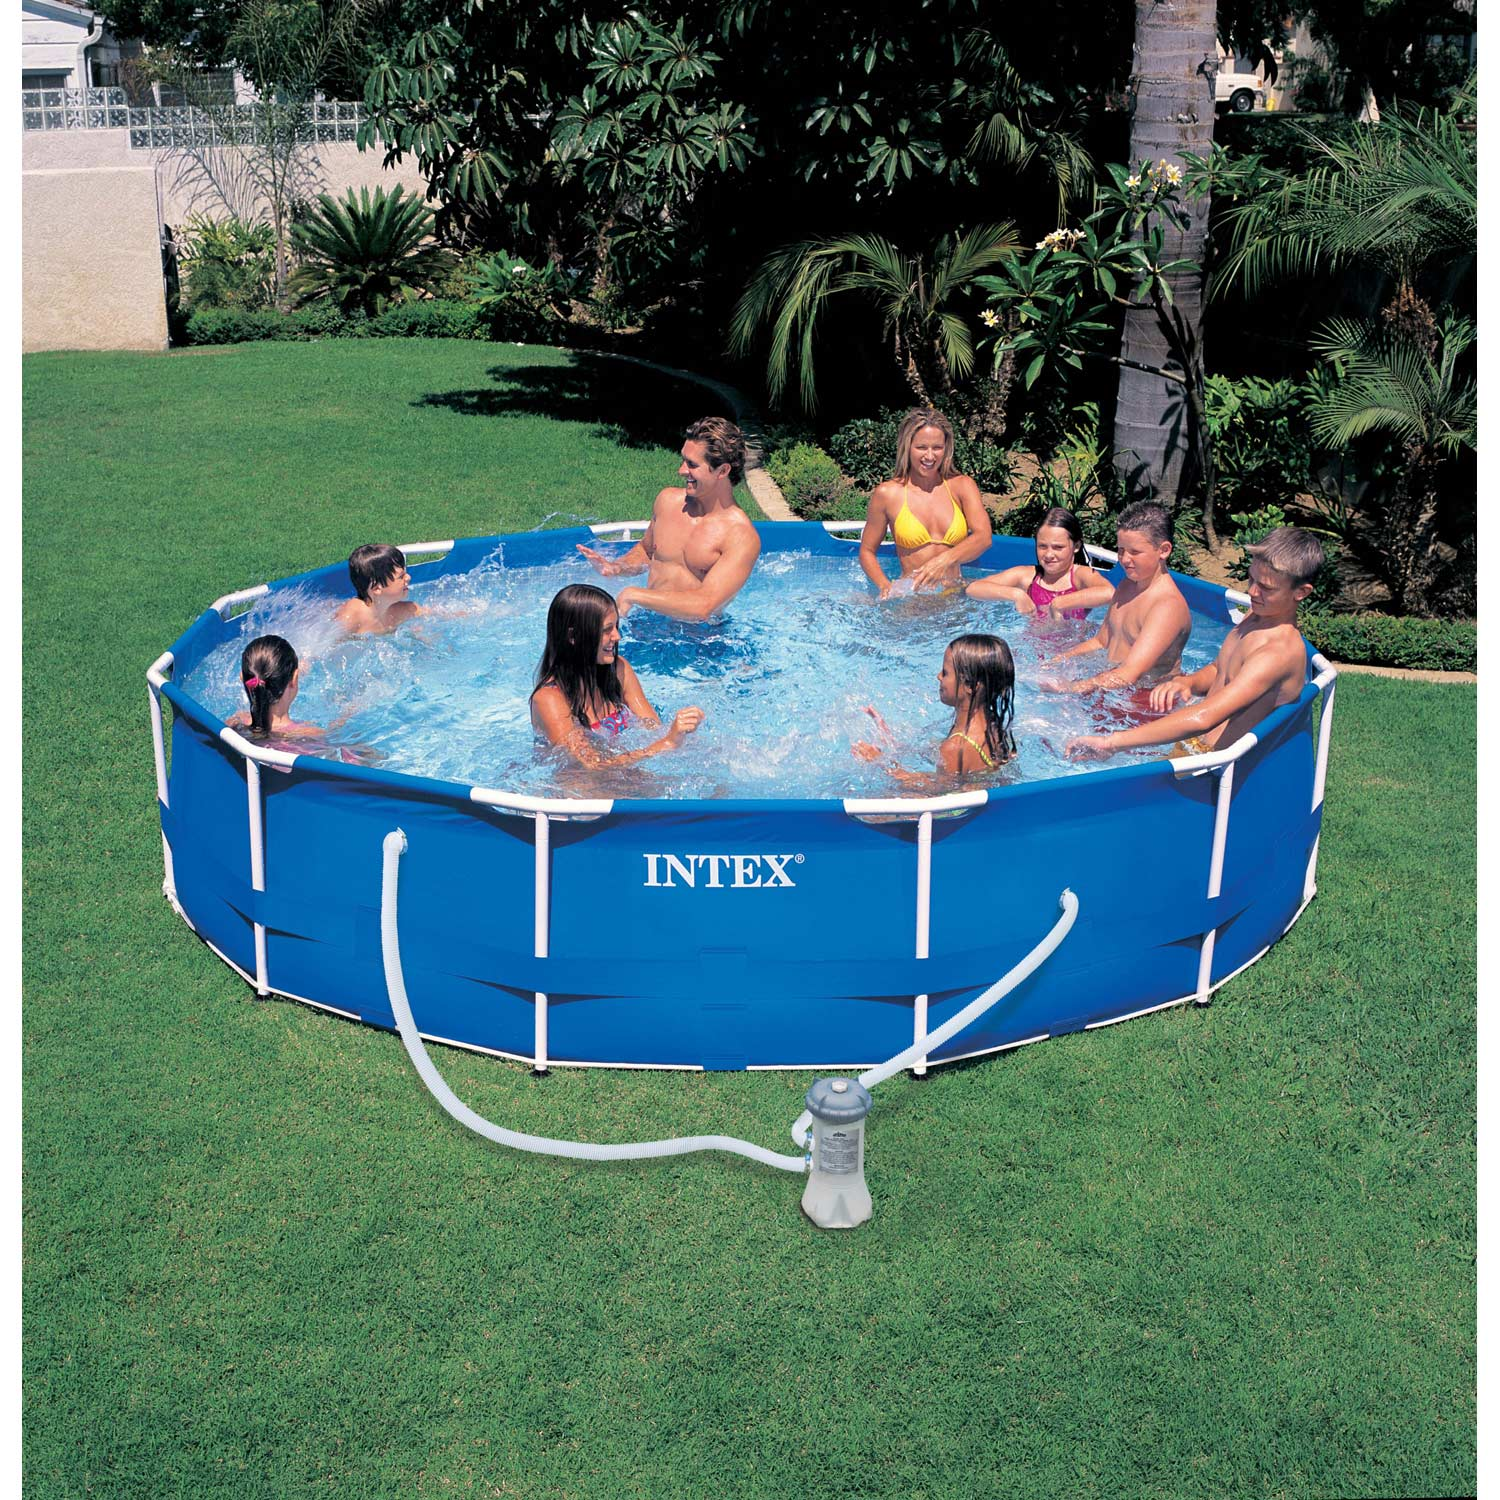 Piscine hors sol autoportante tubulaire metal frame intex for Margelle piscine hors sol leroy merlin